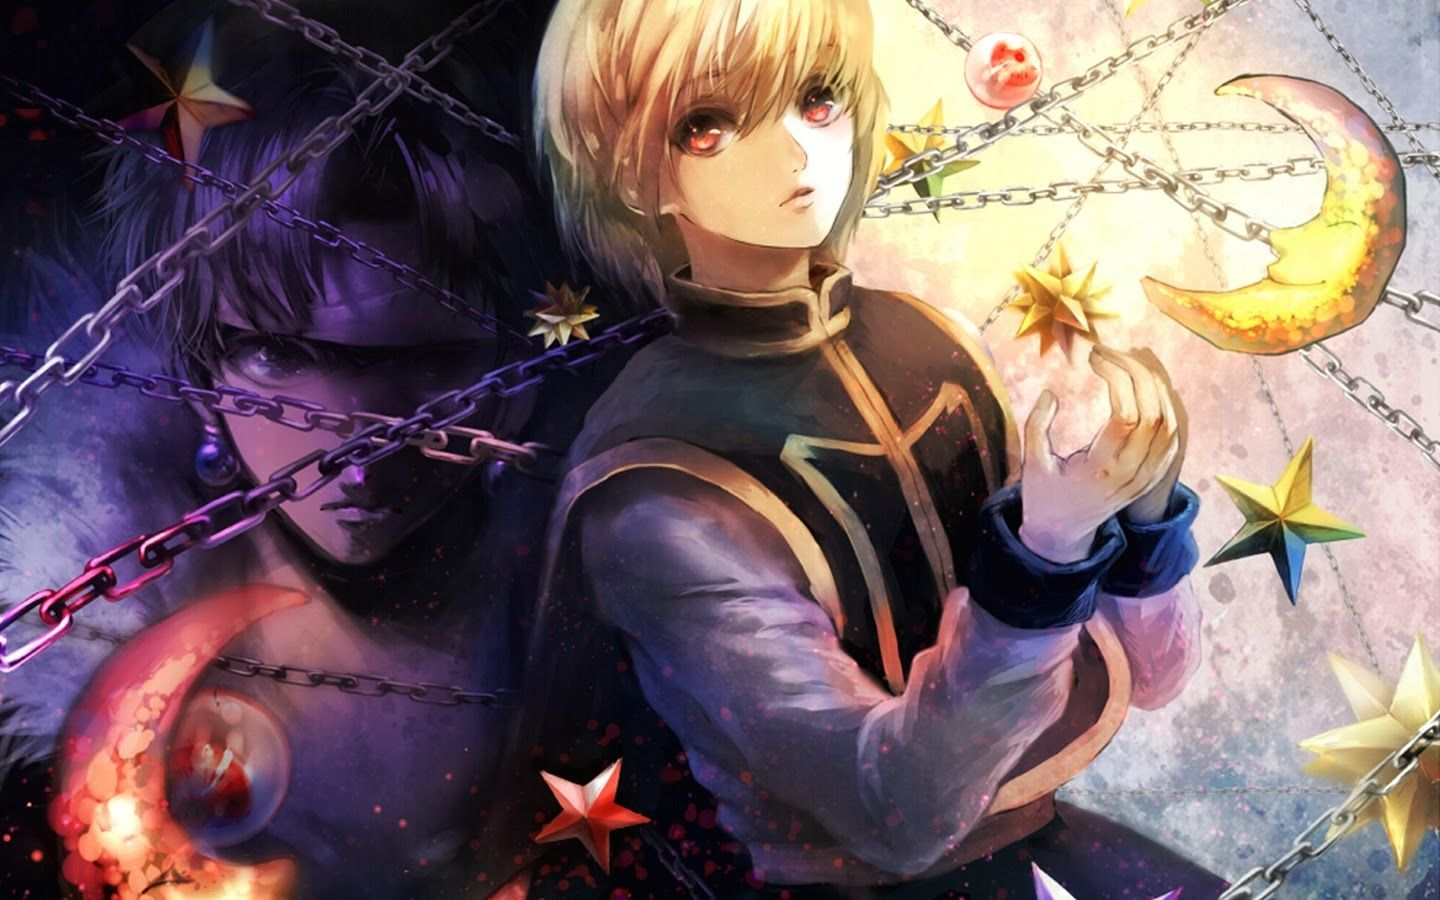 Anime Hunter X Hunter Chrollo Lucifer Kurapika (Hunter